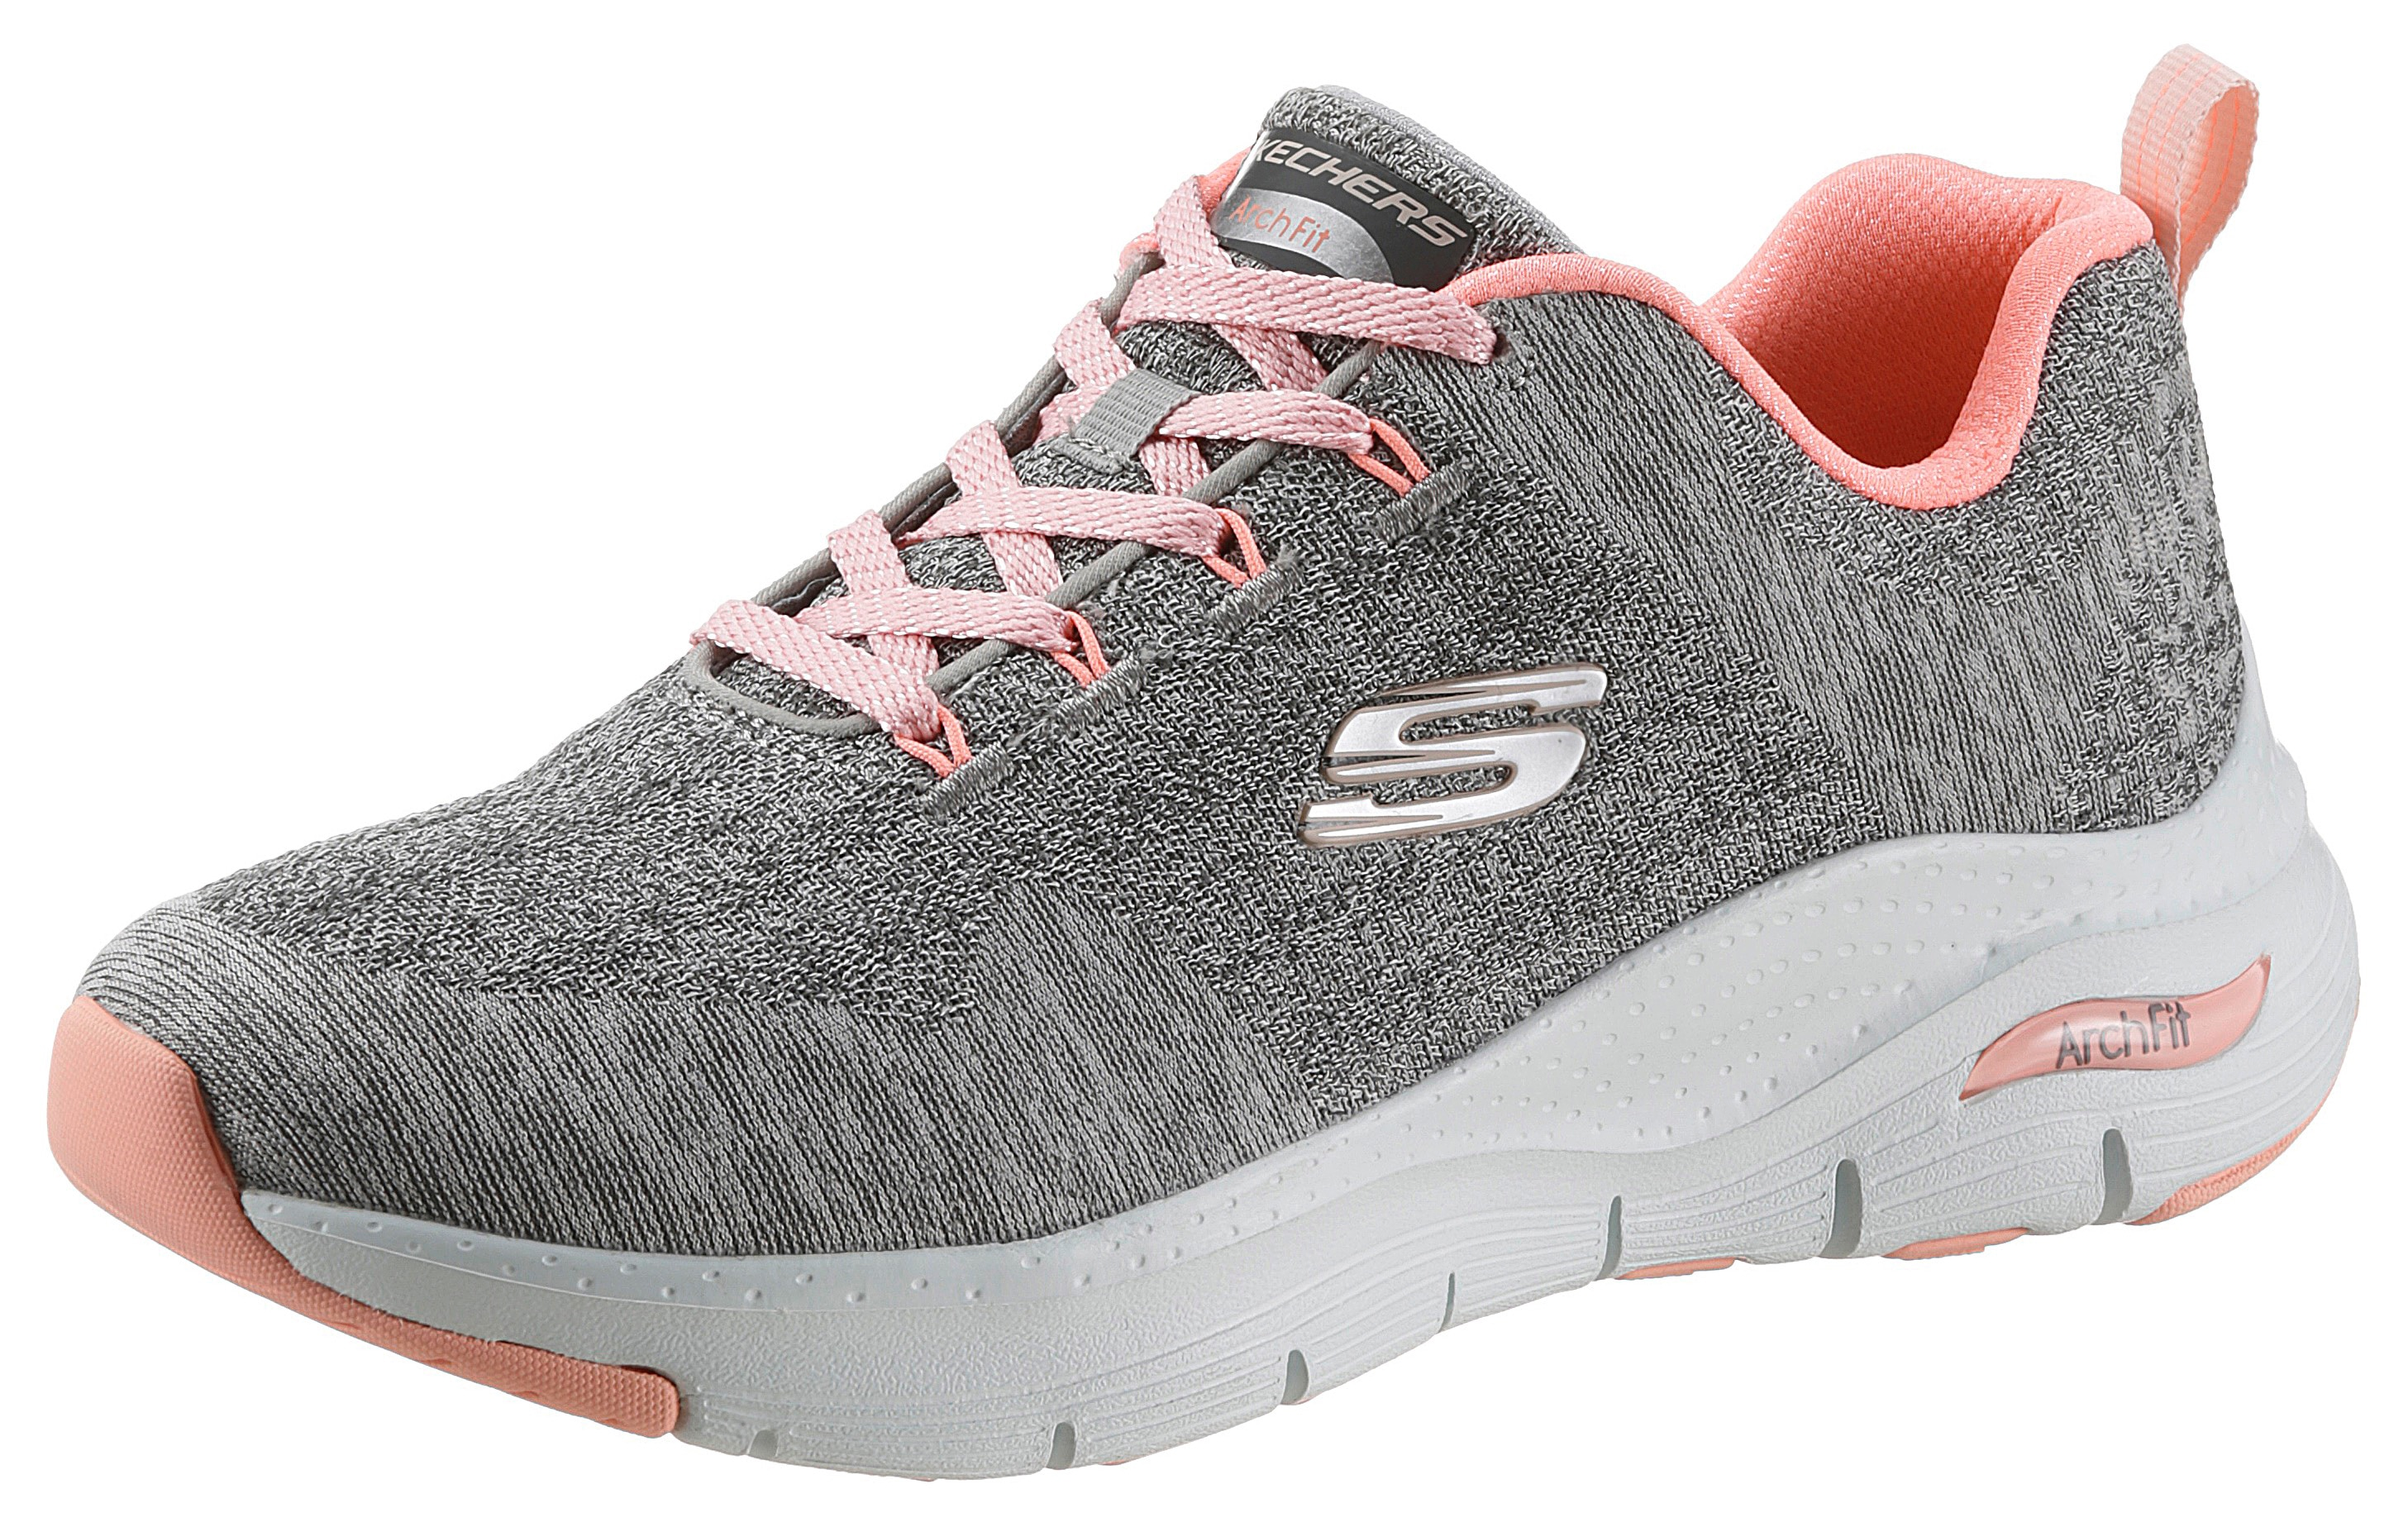 skechers -  Sneaker ARCH FIT - COMFY WAVE, mit Arch Fit-Innensohle